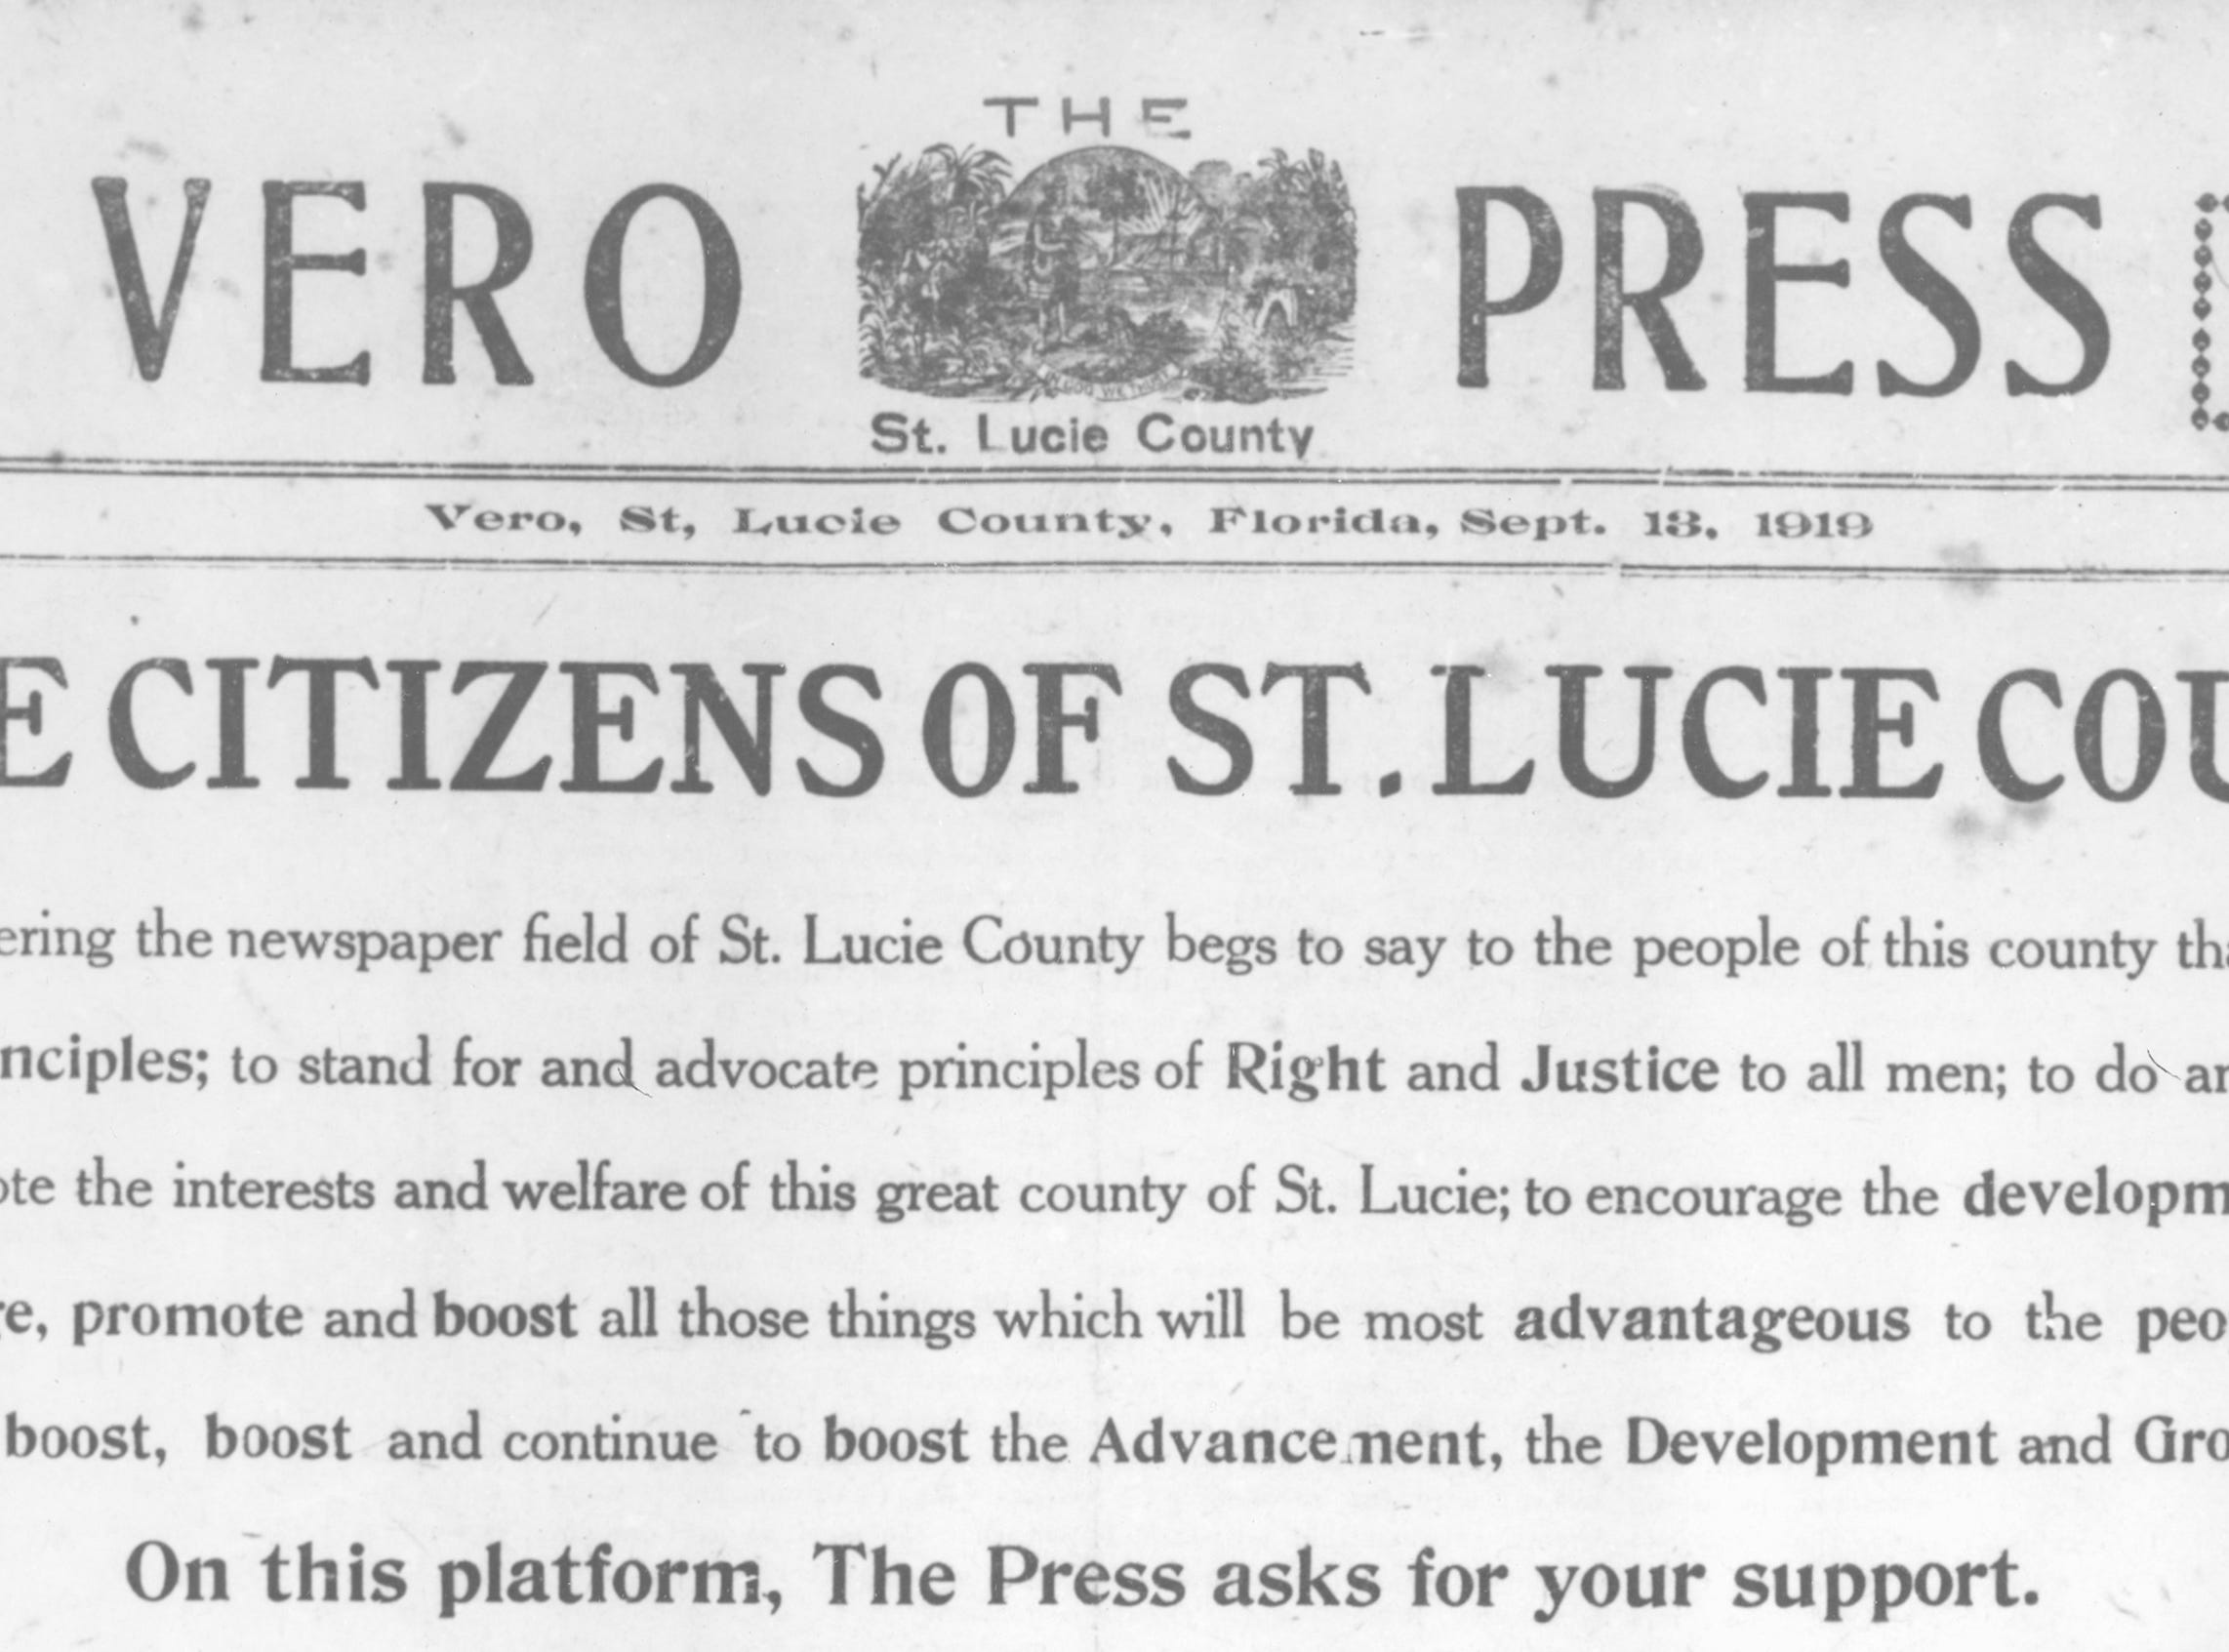 The masthead of The Vero Press on Sept. 13, 1919, addresses the residents of St. Lucie County, which Vero Beach was a part of at that time.